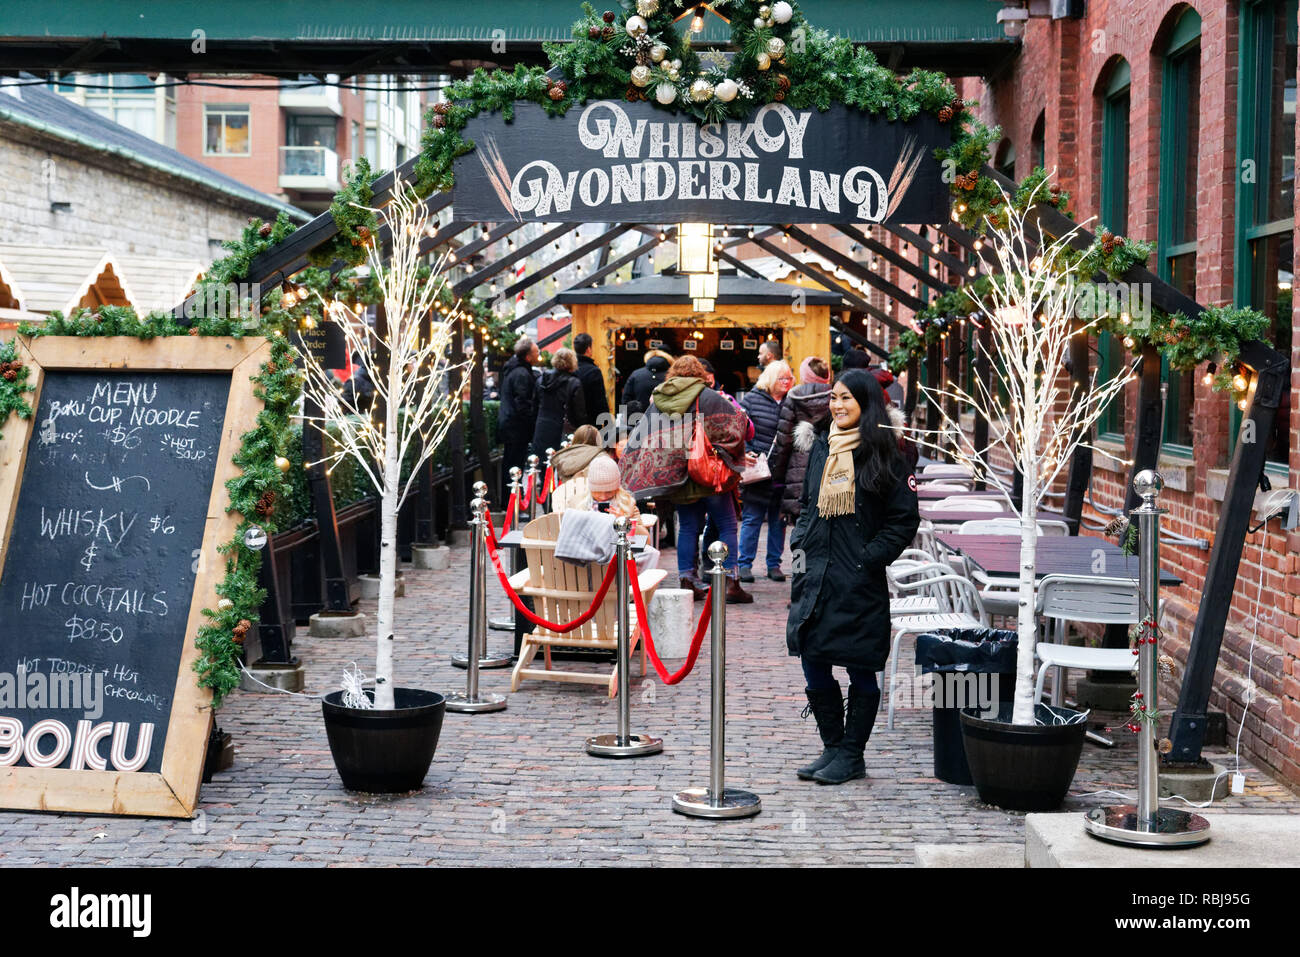 Whisky Wonderland Bar in Toronto Christmas Market in the Distillery District - Stock Image